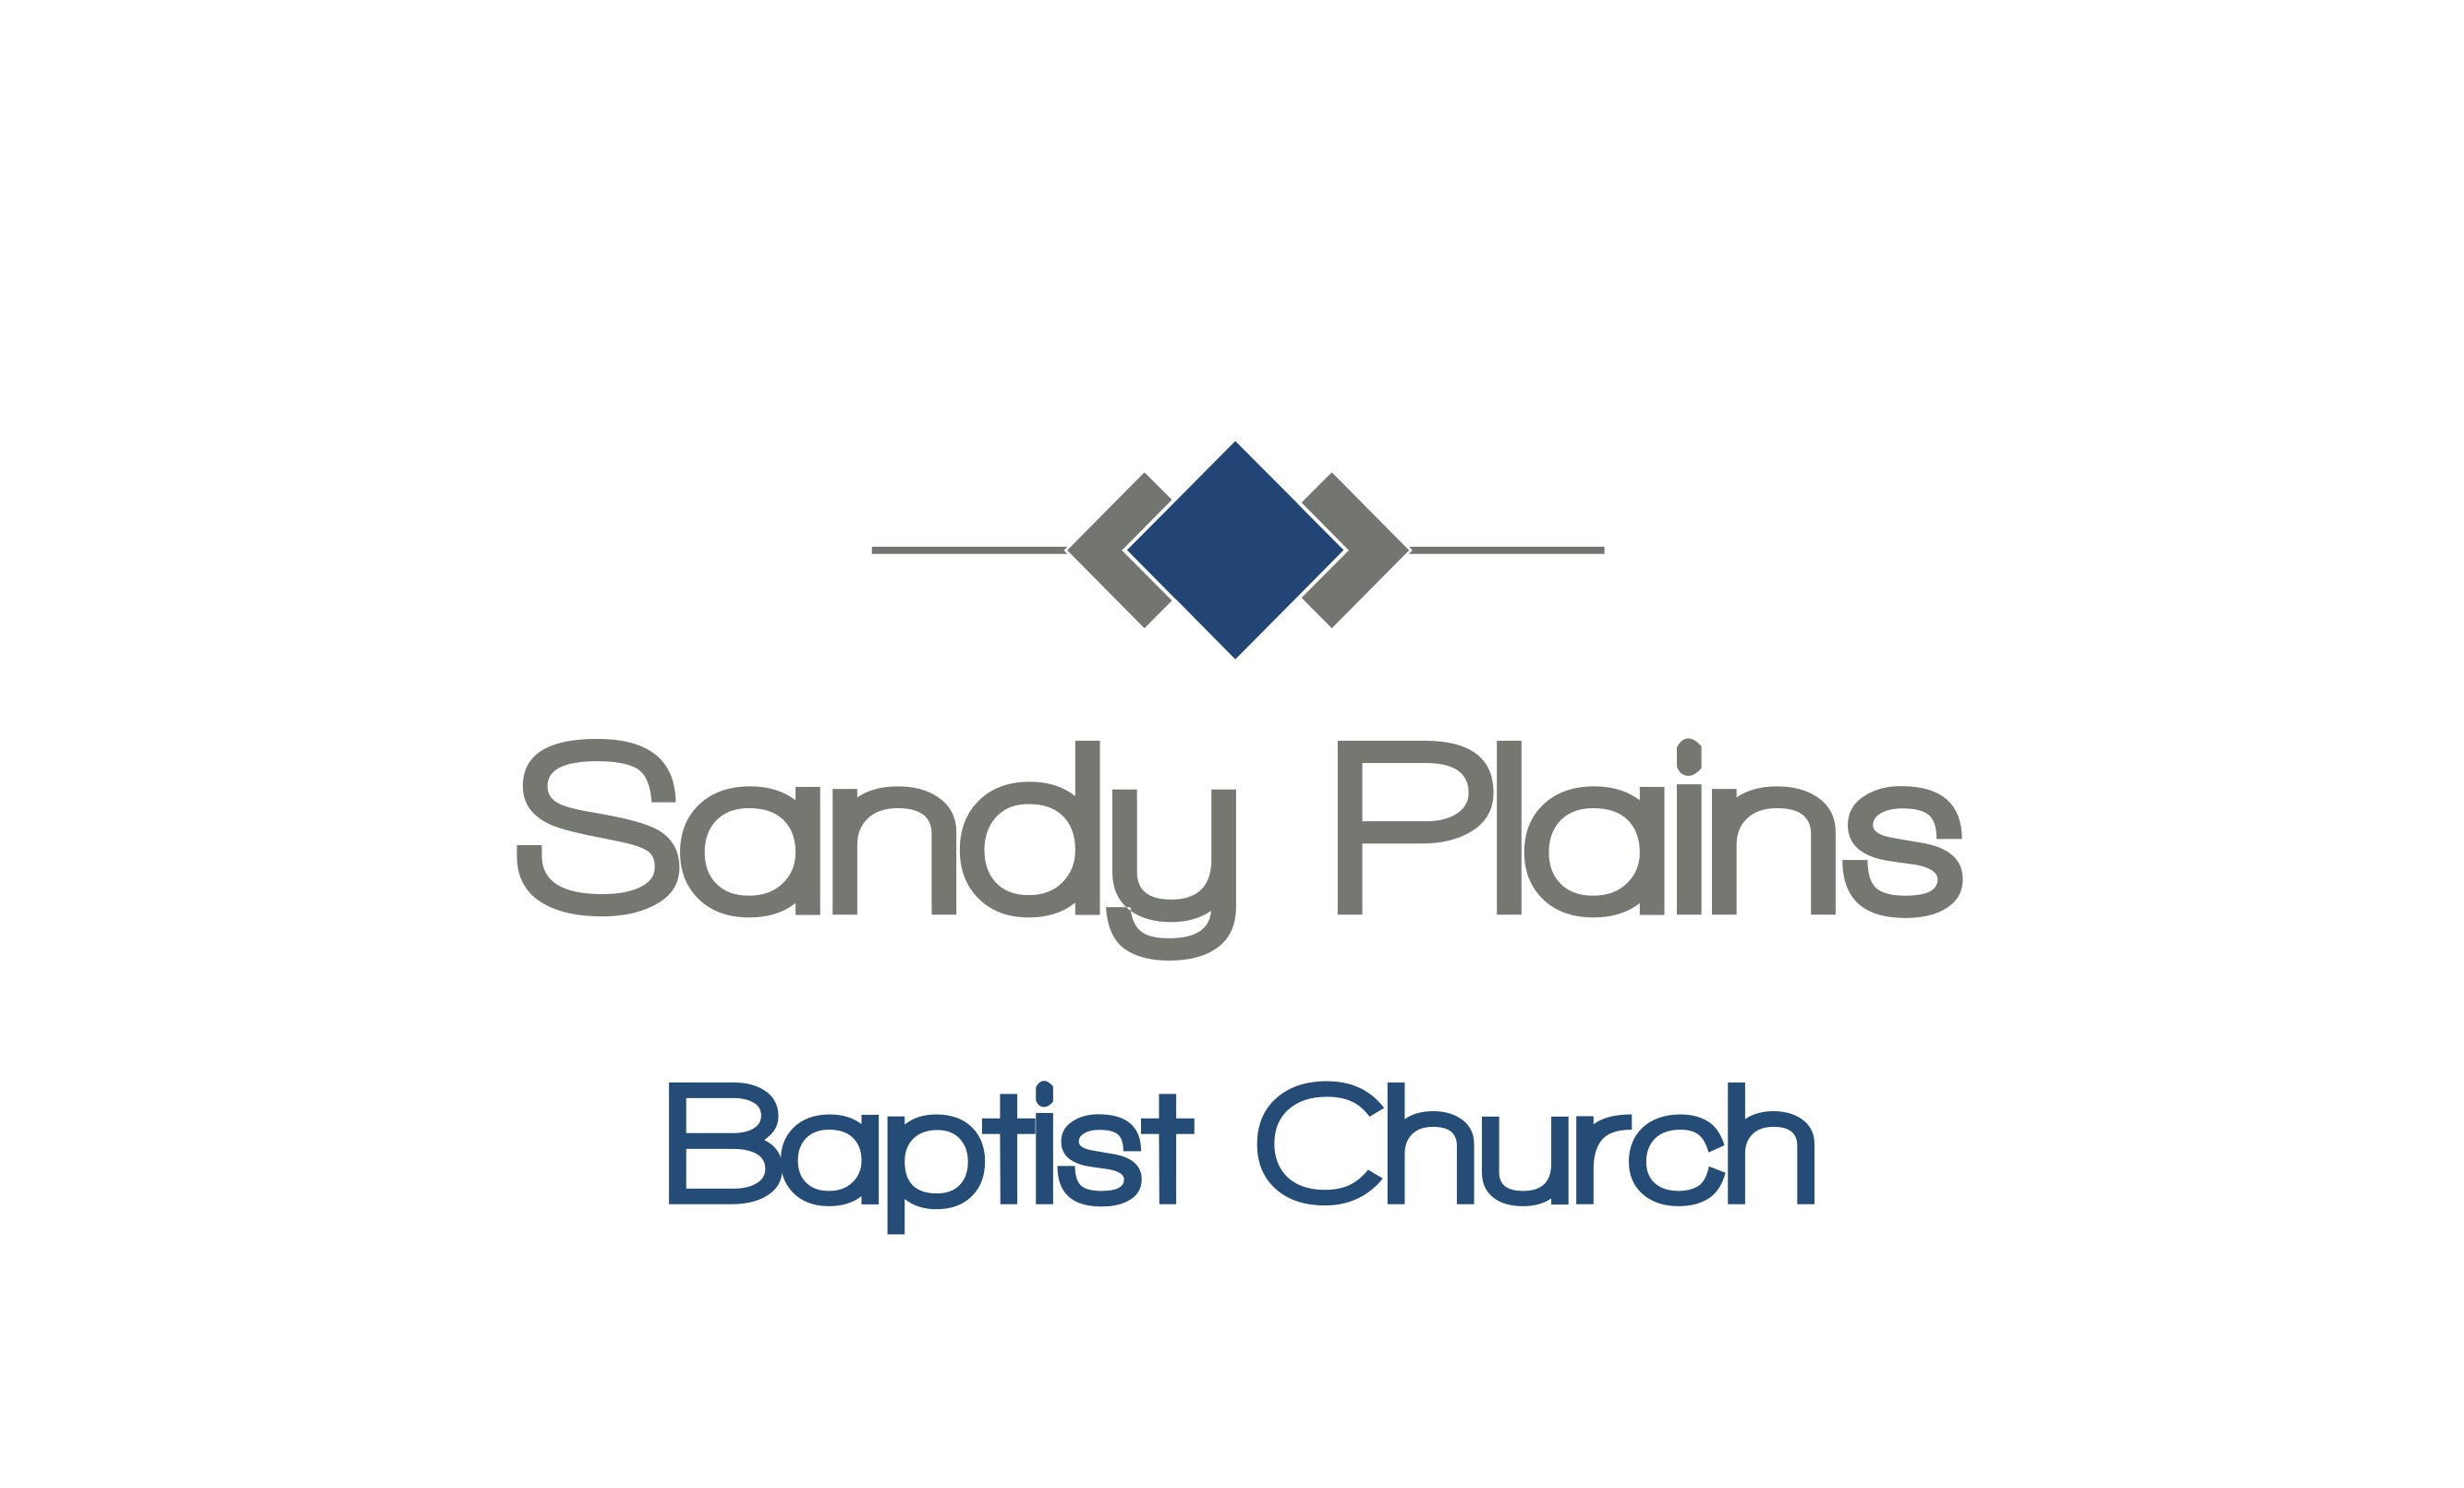 Sandy Plains Baptist Church - Gastonia churches, Clover churches, Lake Wylie churches, Belmont churc